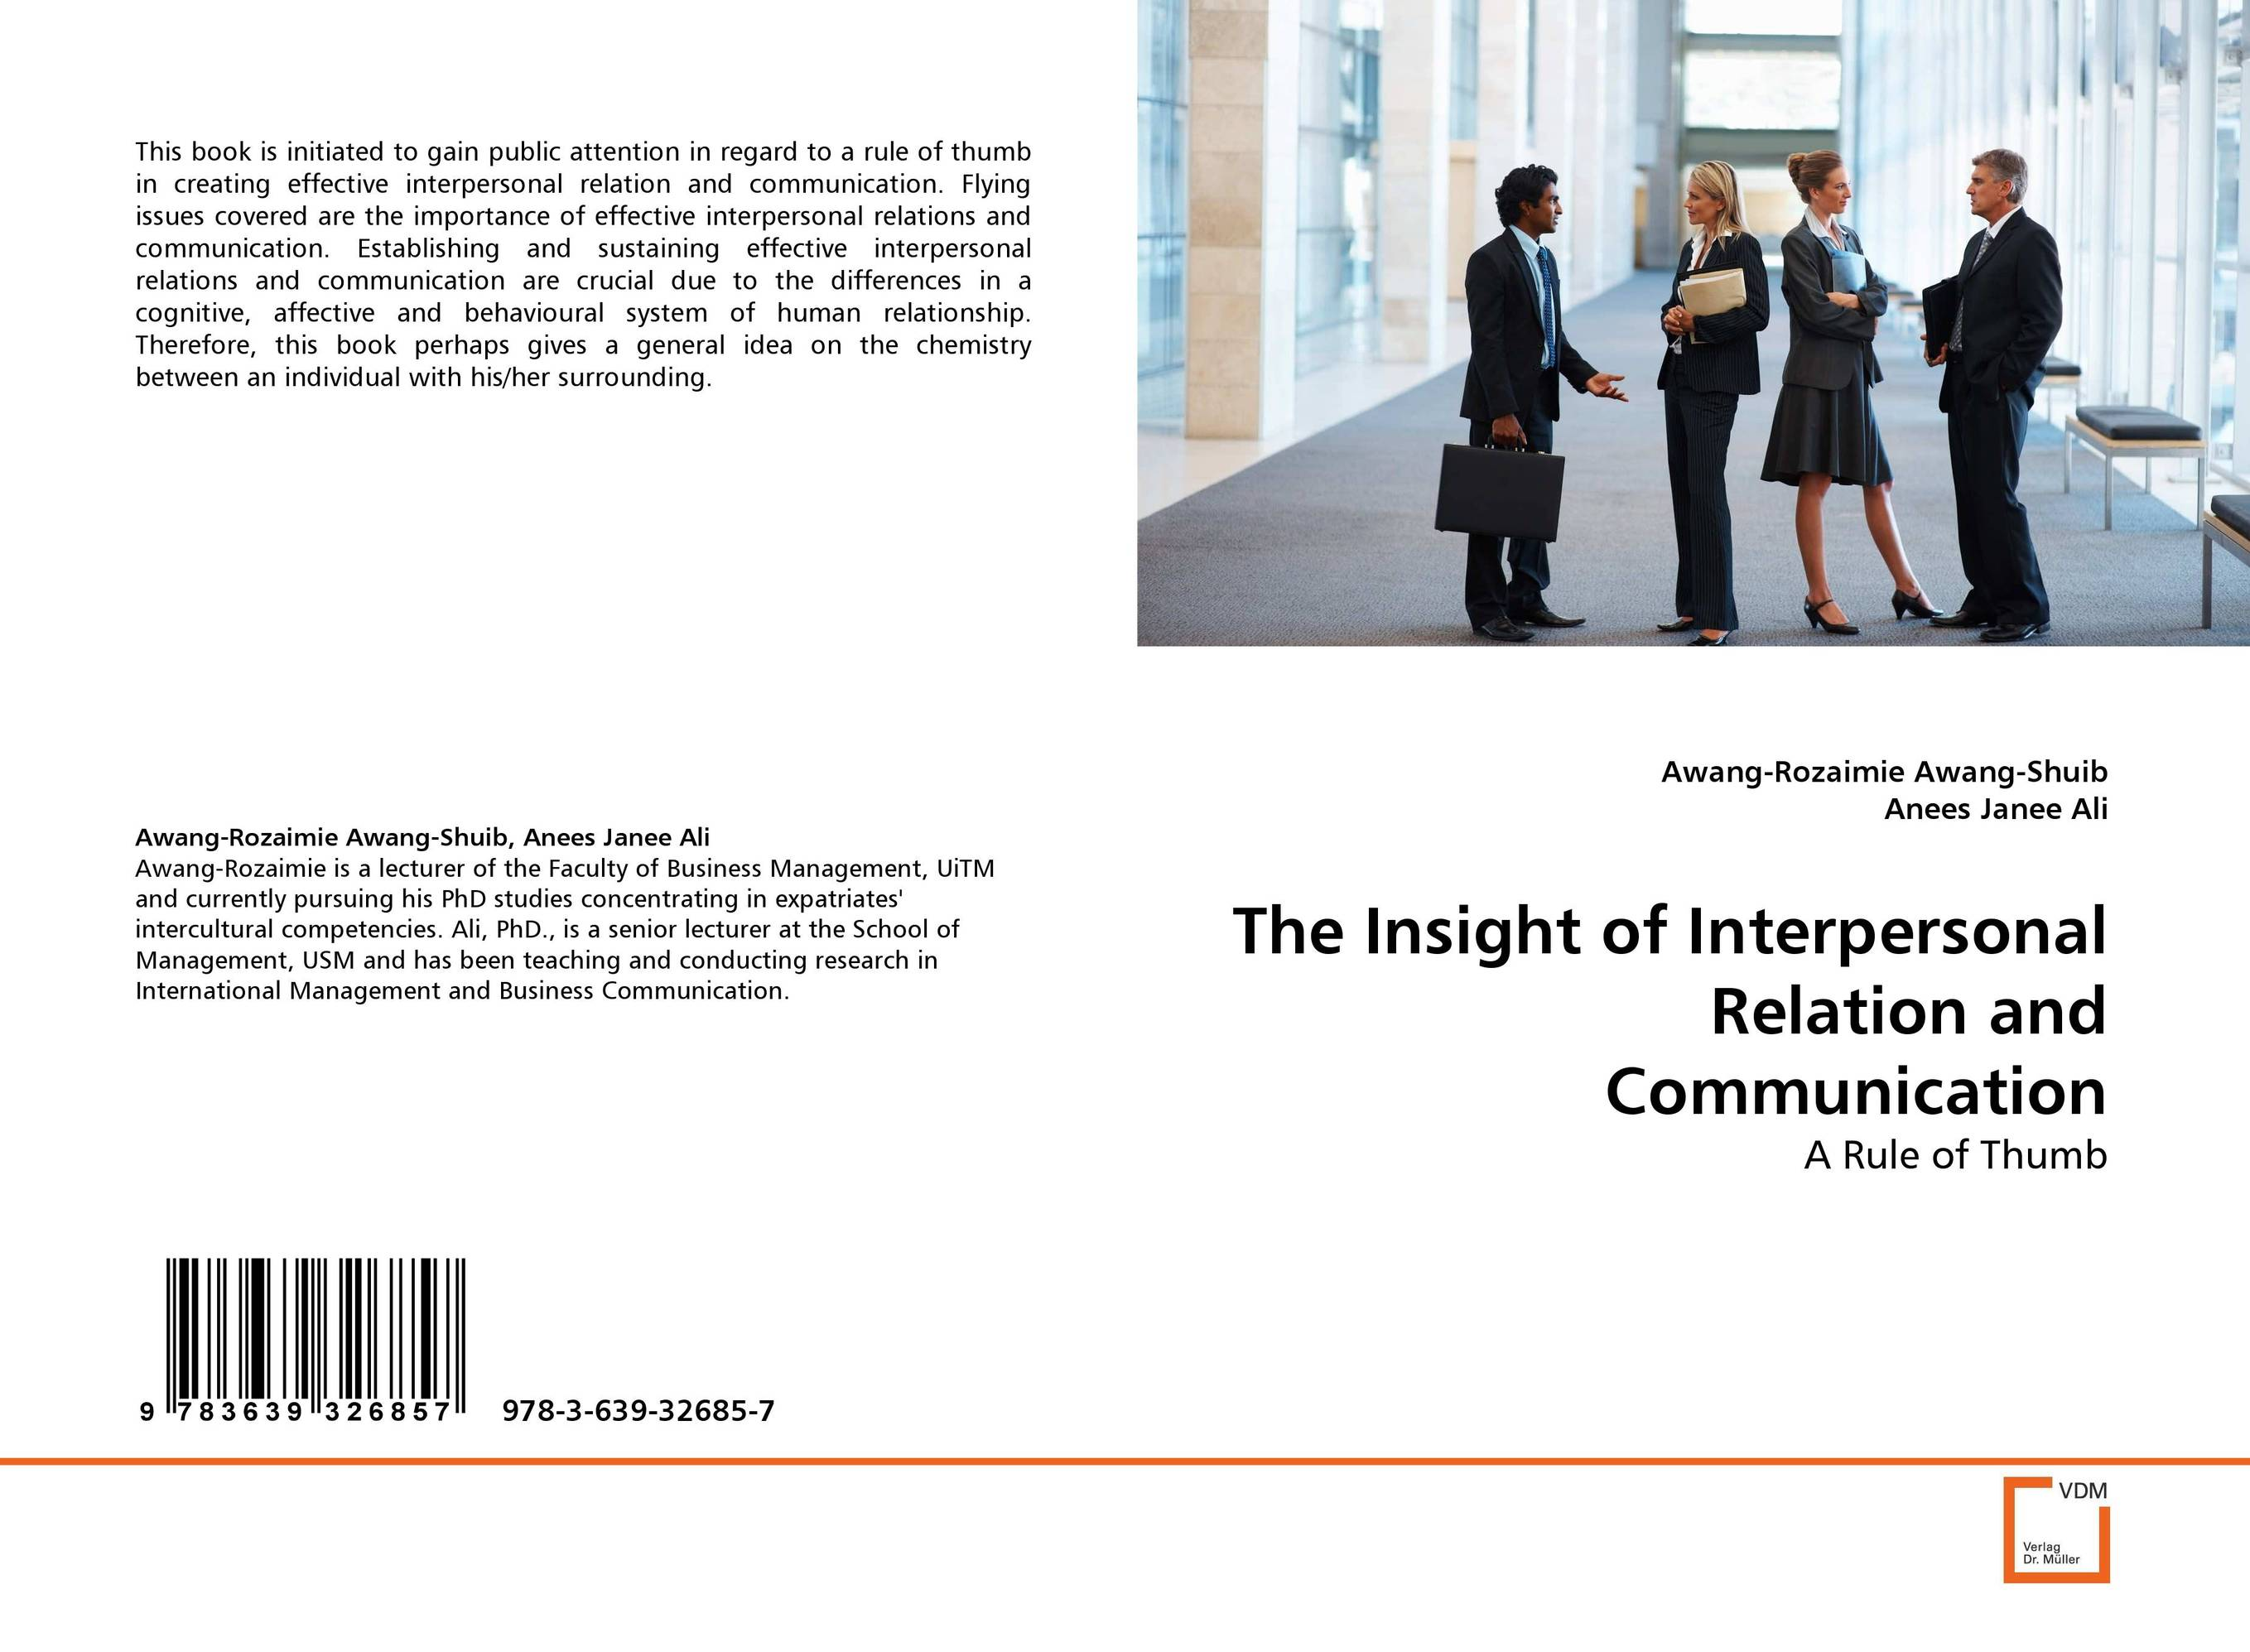 The Insight of Interpersonal Relation and Communication effective communication